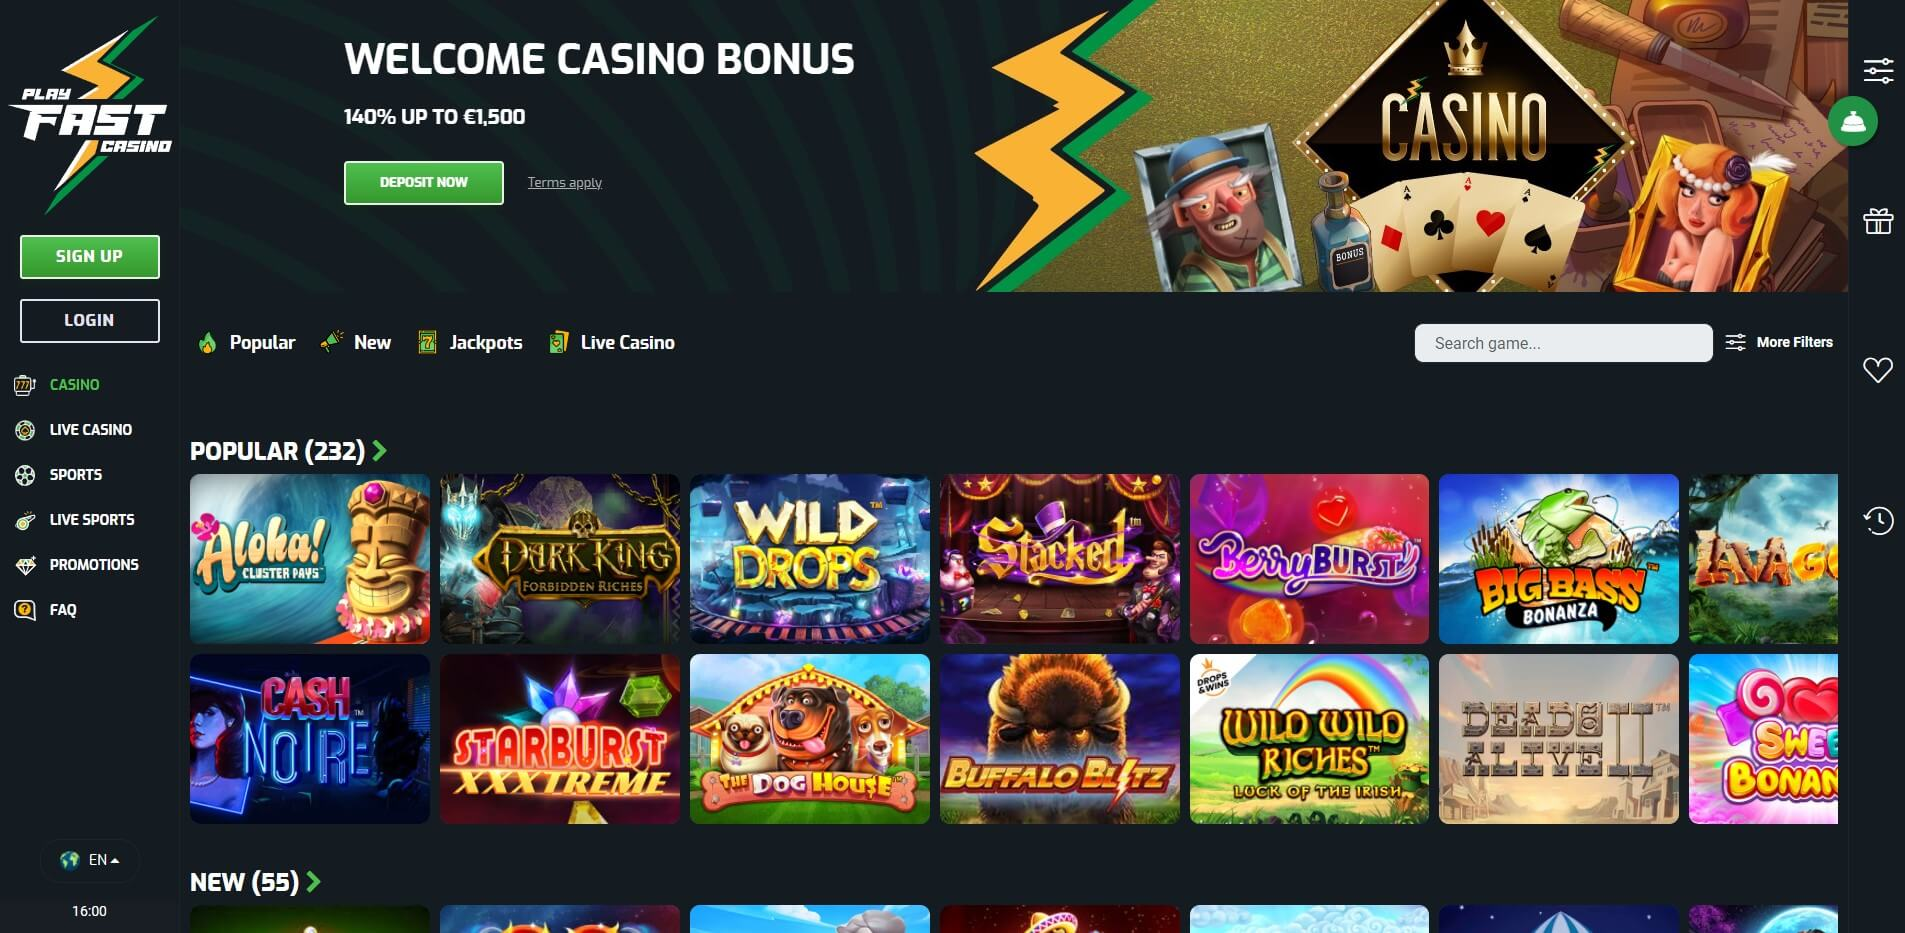 Games at Playfast Casino